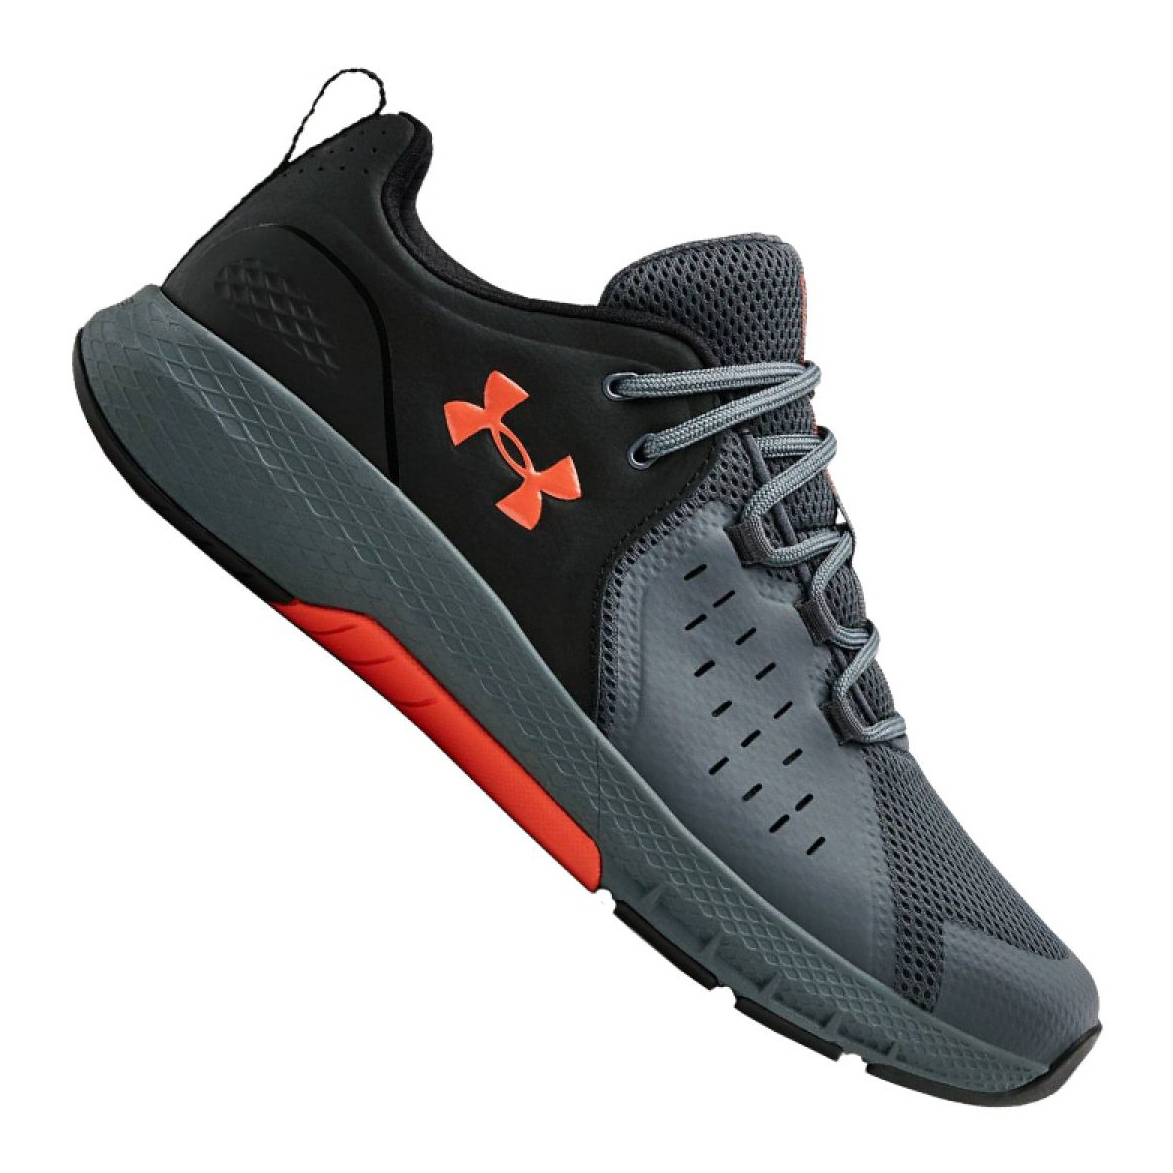 Details about Under Armour Under Armor Charged Commit Tr 2.0 M 3022027 003 training shoes